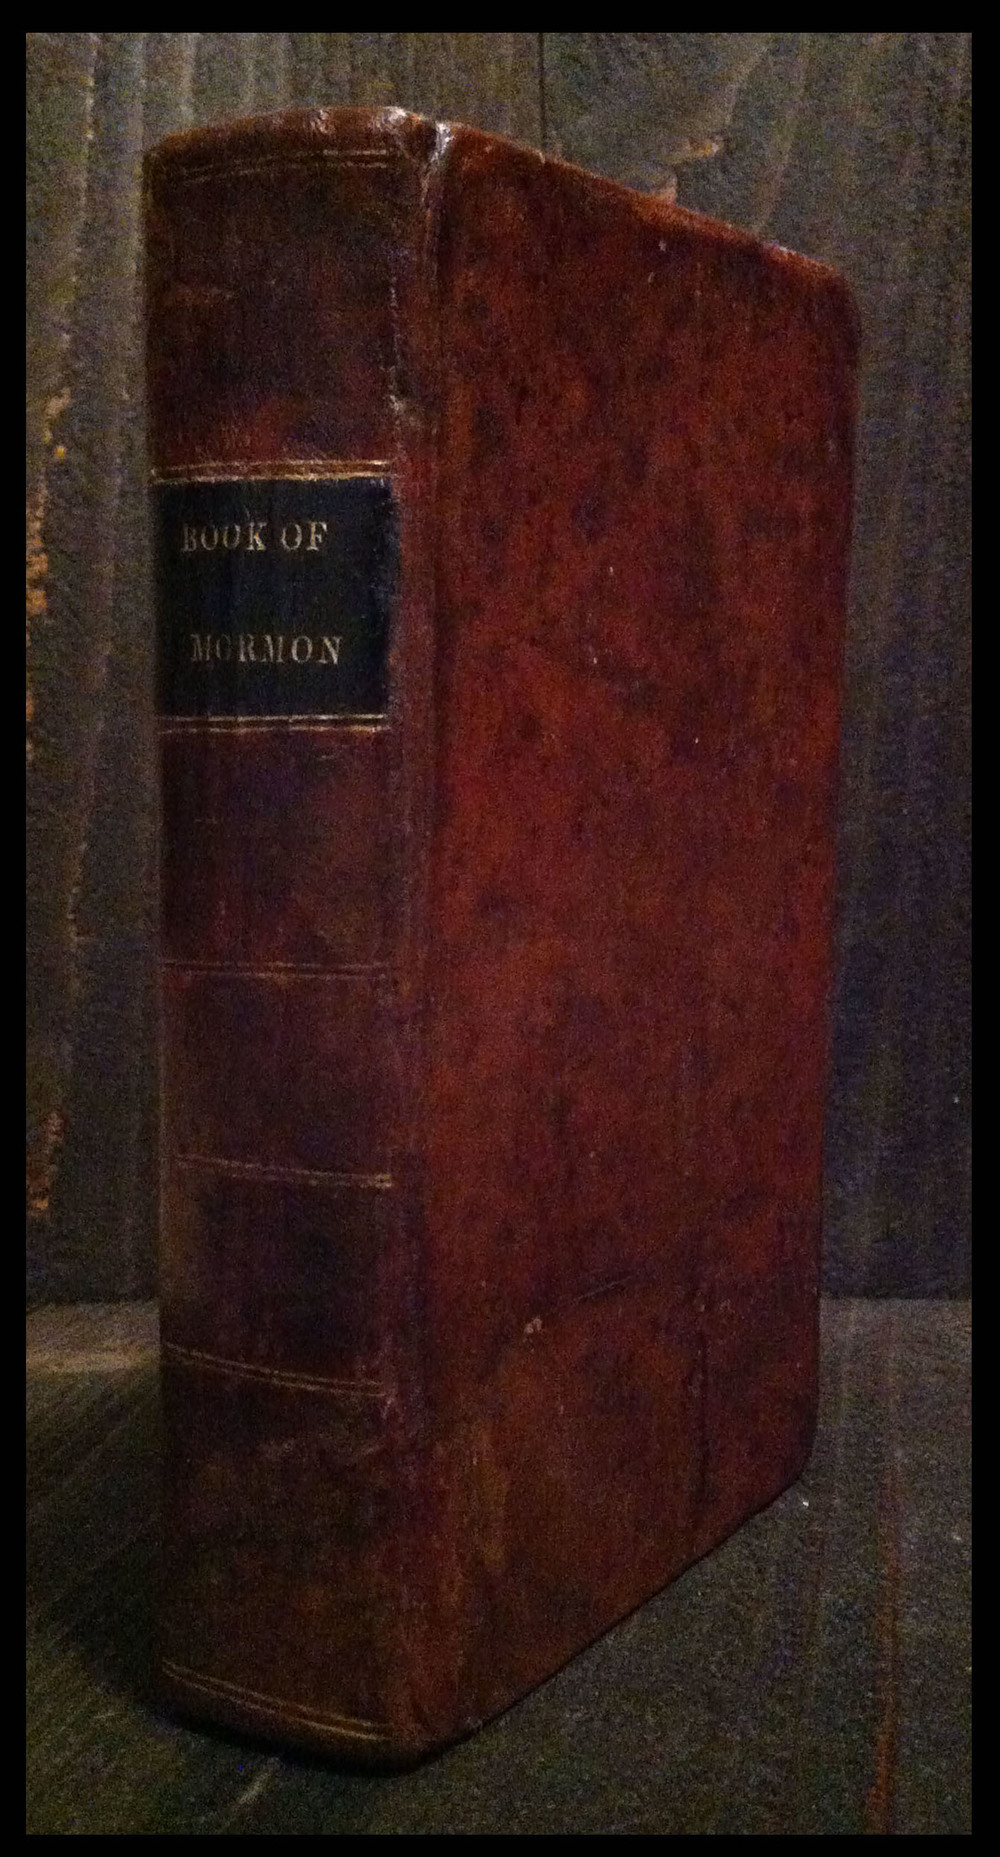 An 1830 first edition Book of Mormon.